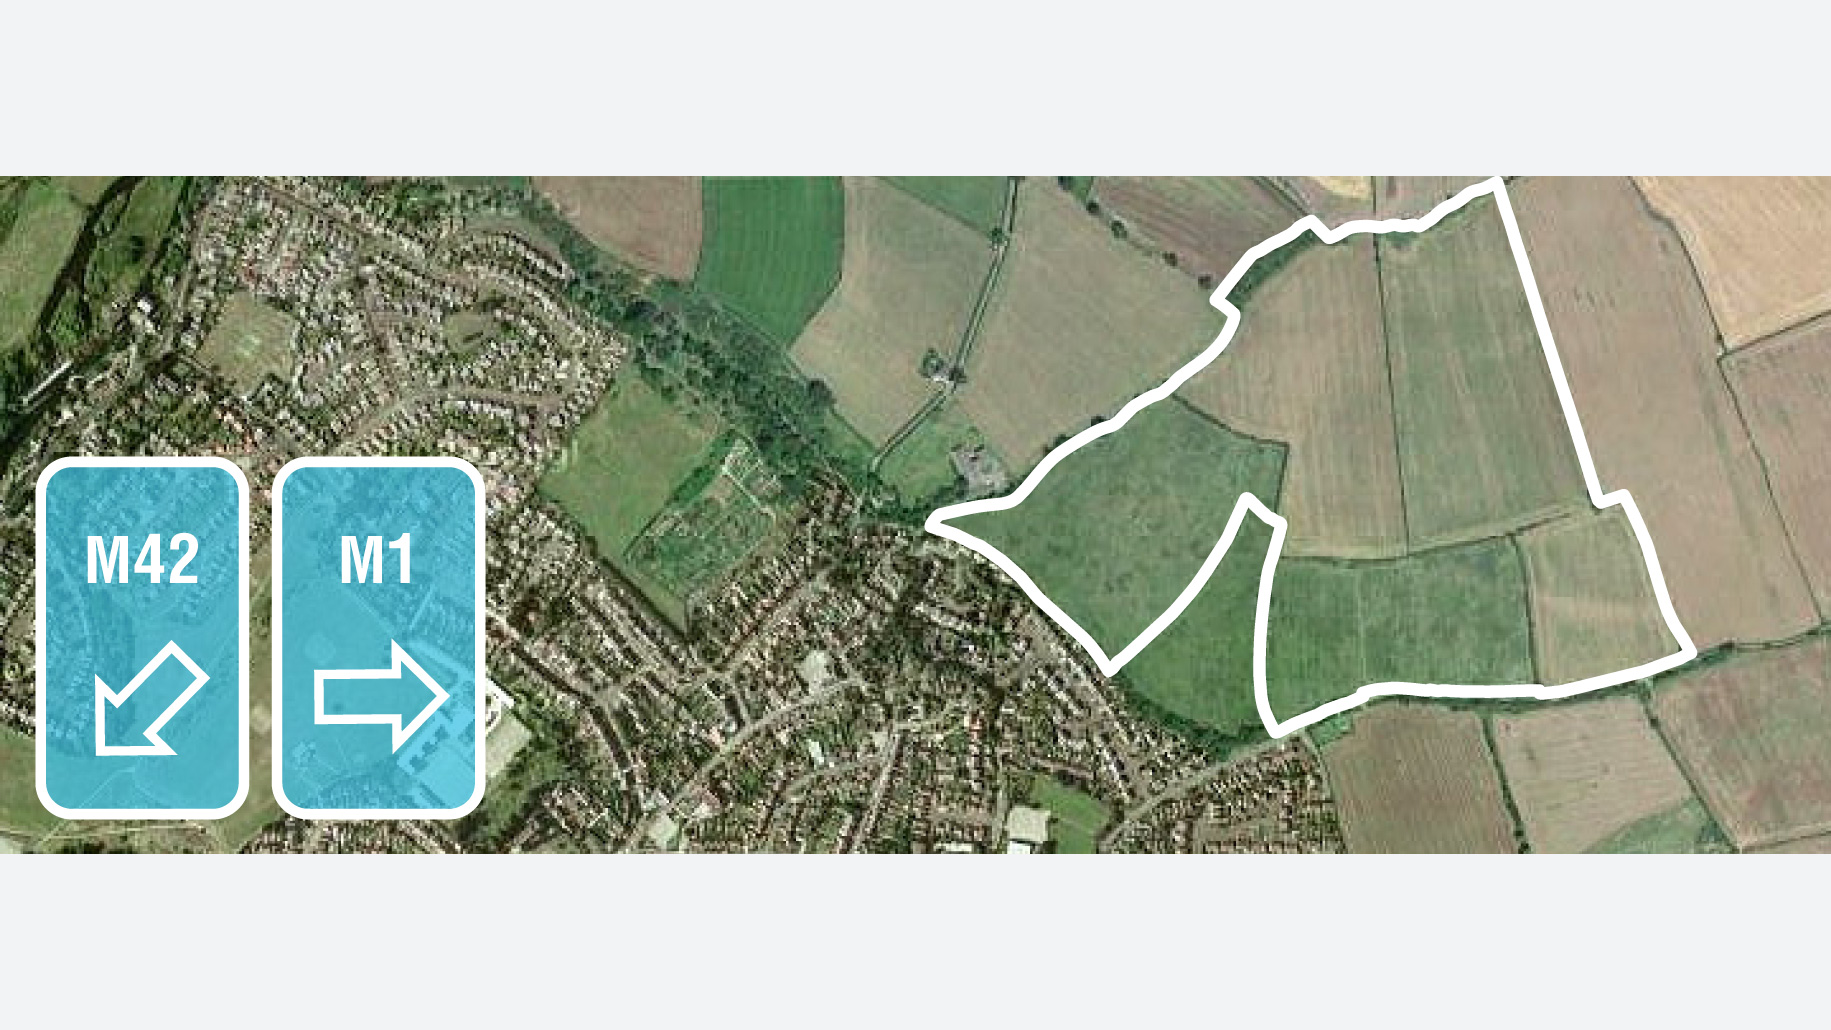 Land for sale in Burton-upon-Trent